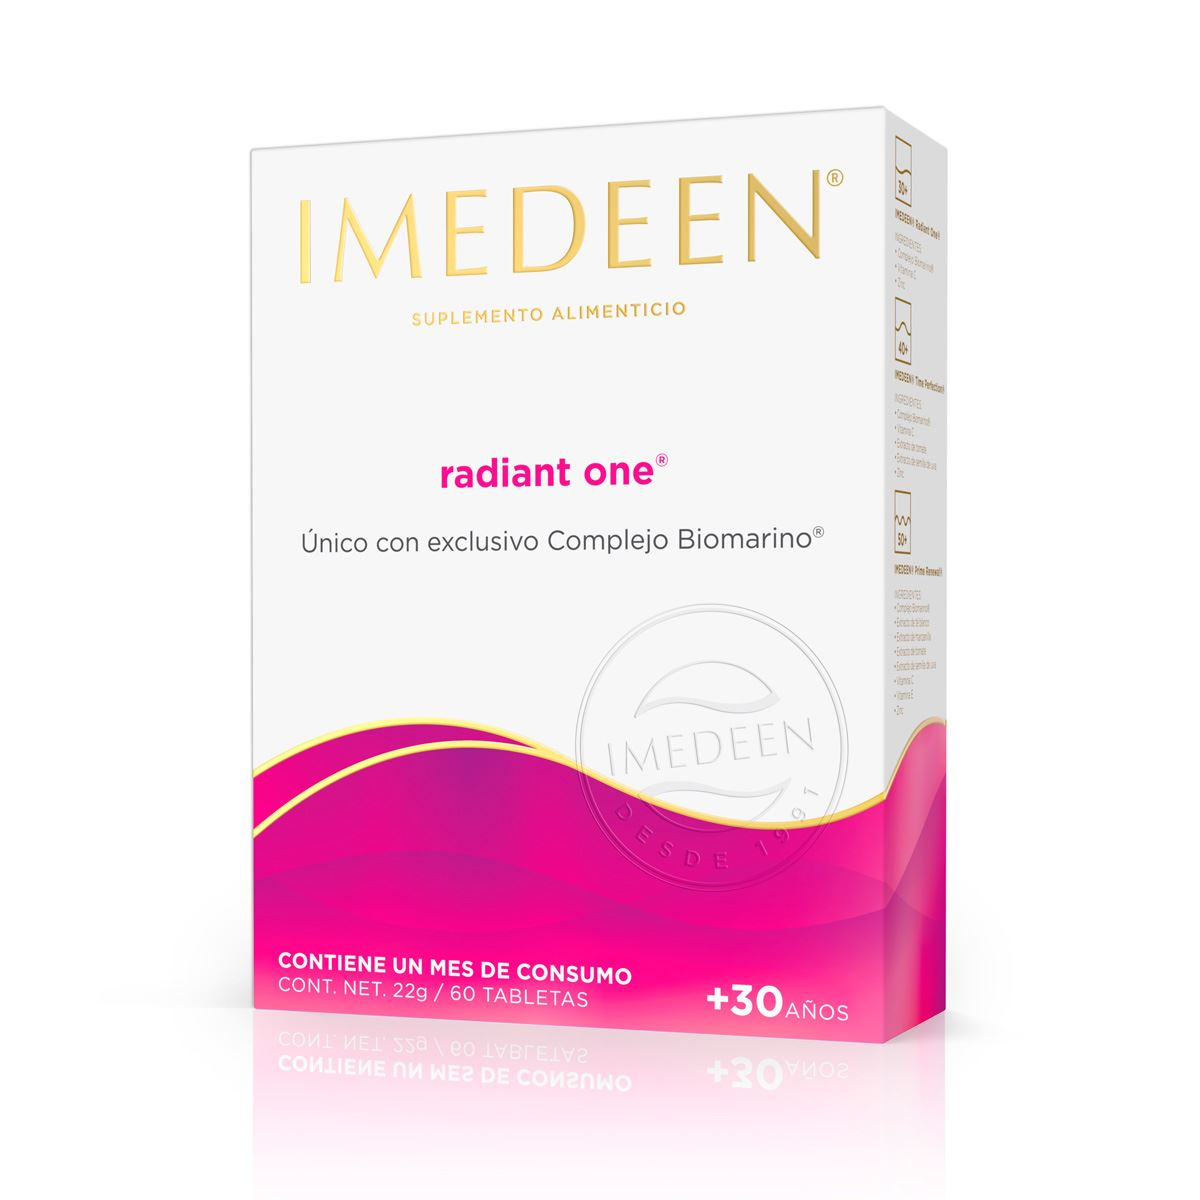 Imedeen Radiant One T 60 30